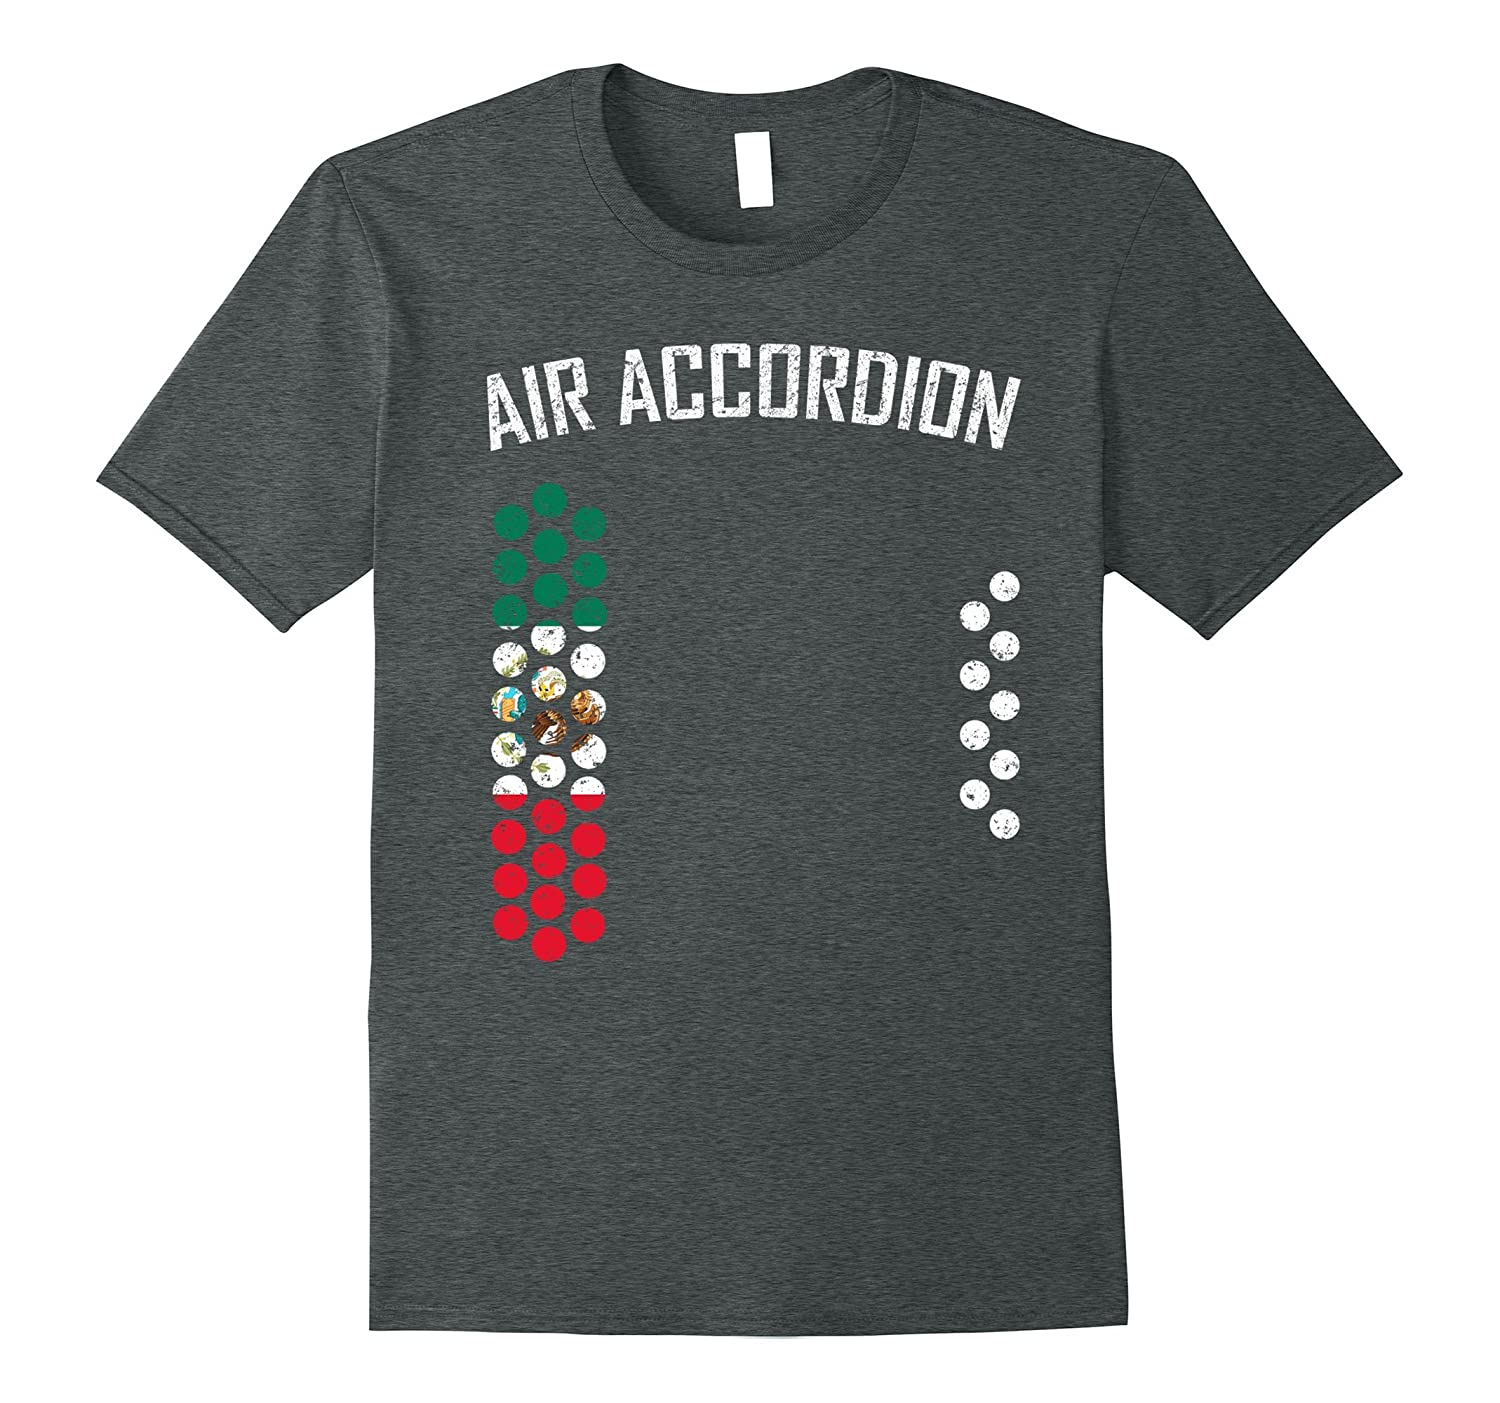 air accordion t shirt - The Flag of Mexico-FL